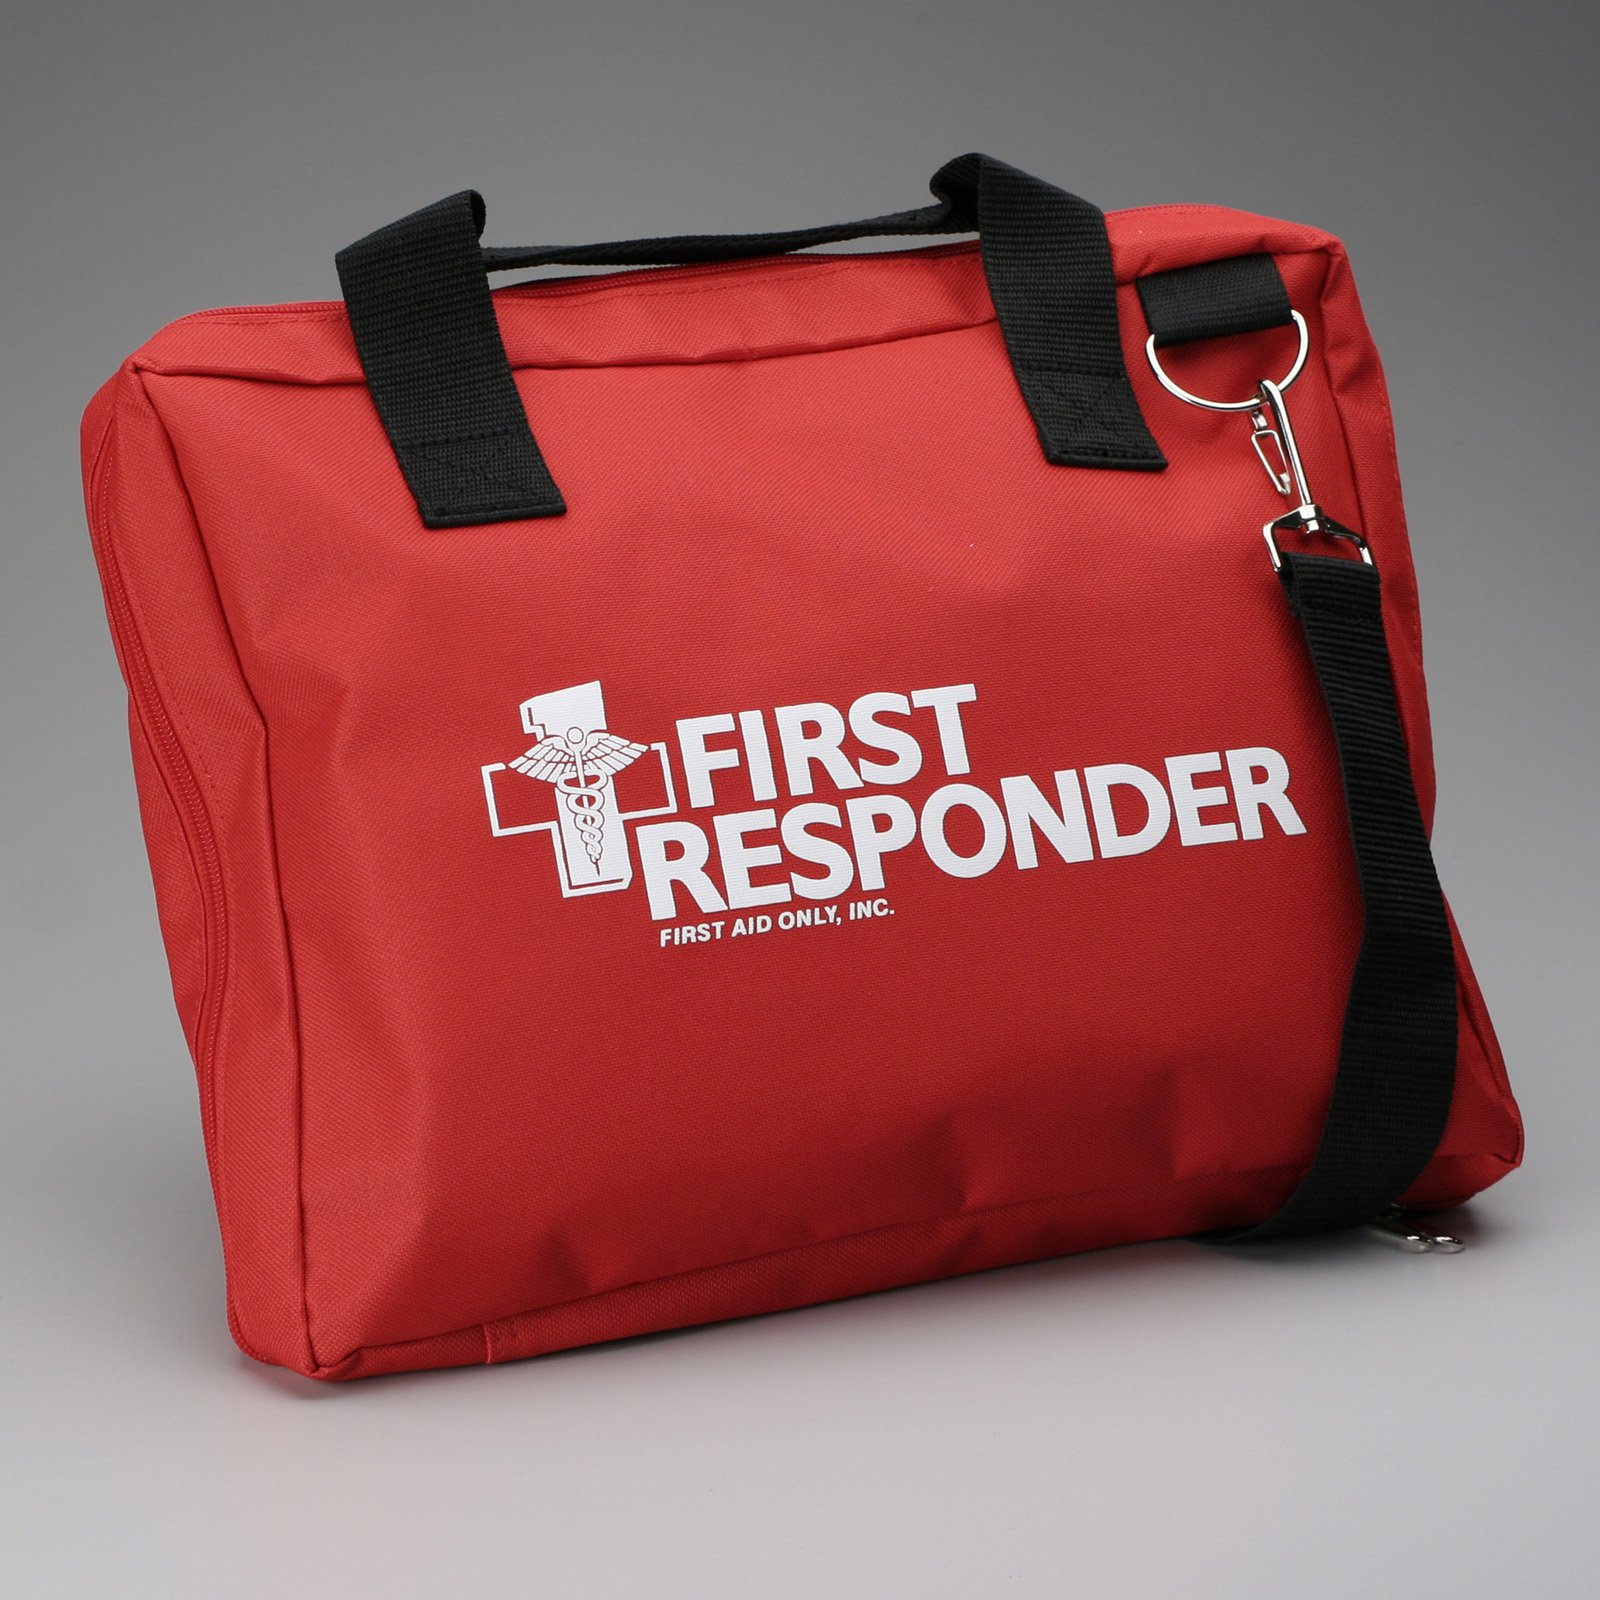 First Aid Only First Responder Kit - 120 Pieces